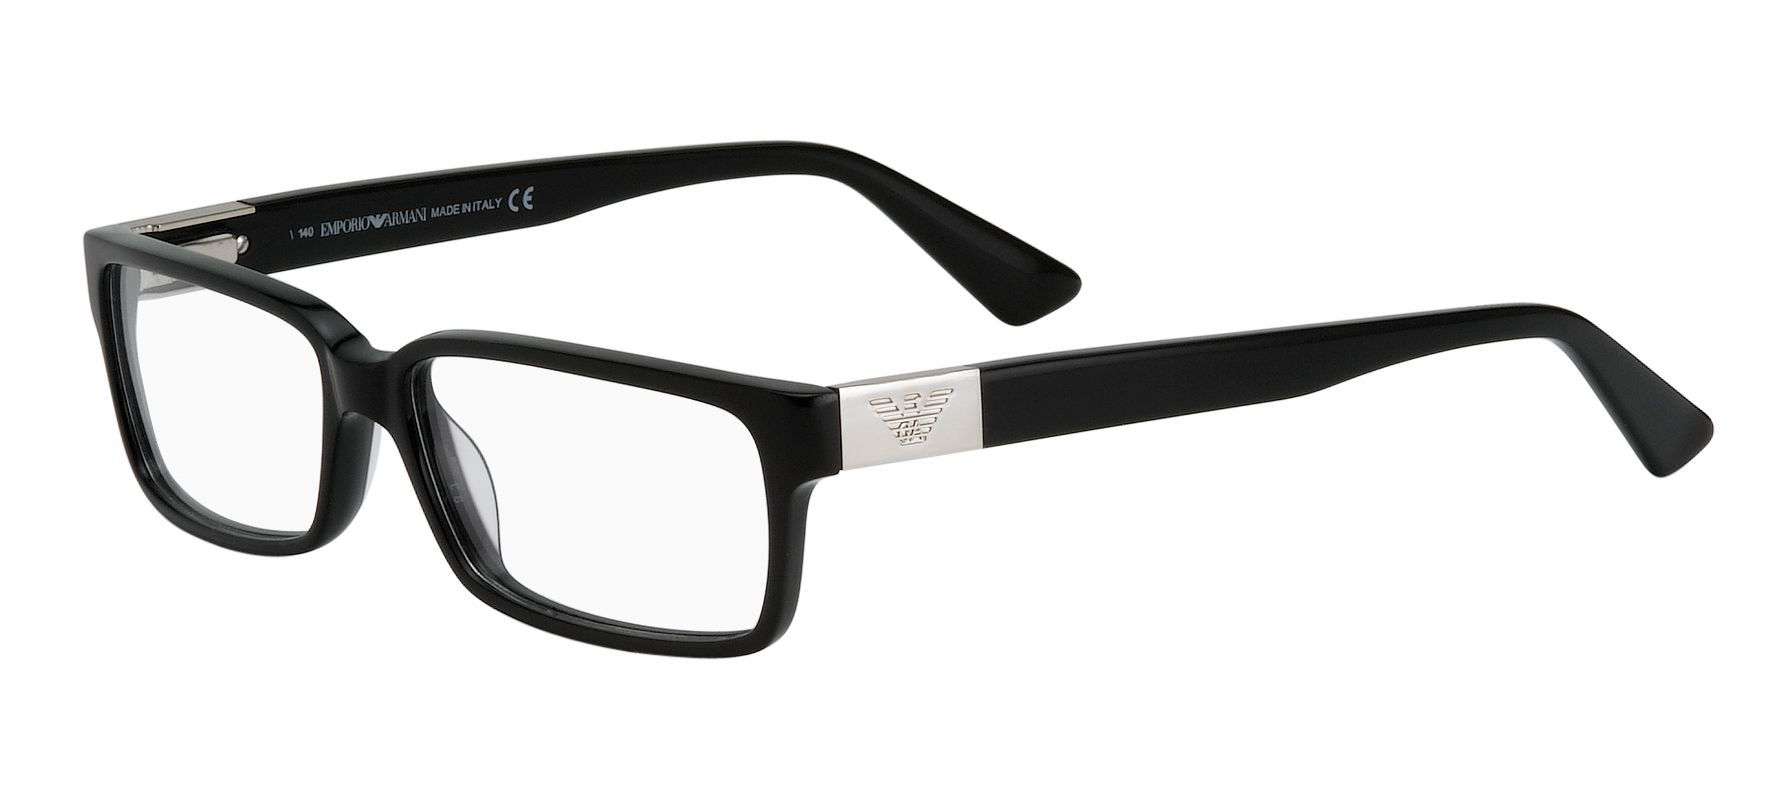 65a4e35842 Classic Armani. A flattering deep rectangular frame shape in black with a  stylish, high contrast silver logo plaque on the sides. SKU 25635126 from  $199 for ...